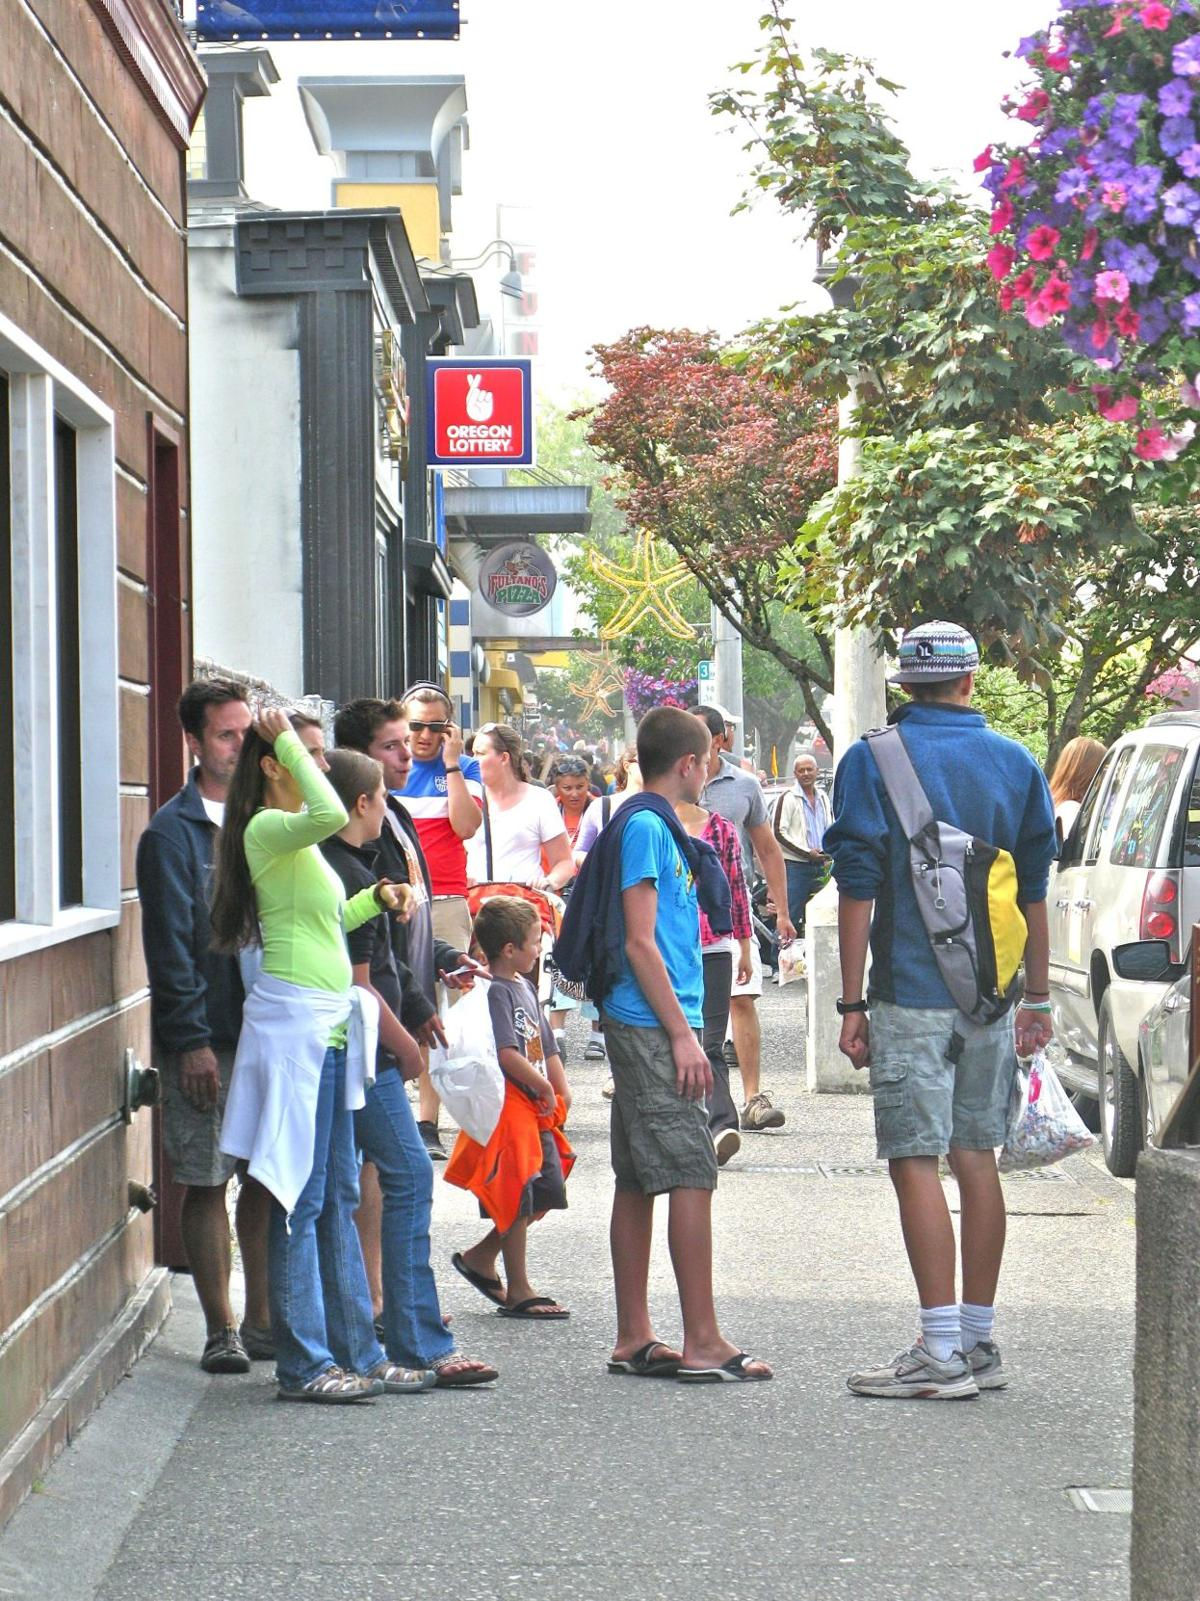 Statistics indicate no lack of visitors to South County